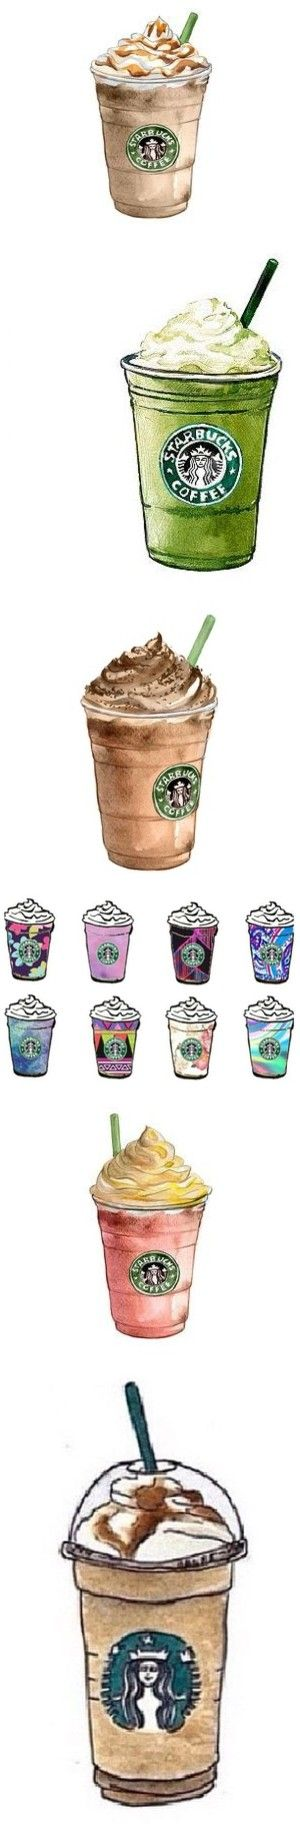 Favorite Tumblr Starbucks Transparents by jewell-in-the-rough on Polyvore featuring food, home, home decor, wall art, fillers, accessories, starbucks, art, watercolor illustration and home wall decor